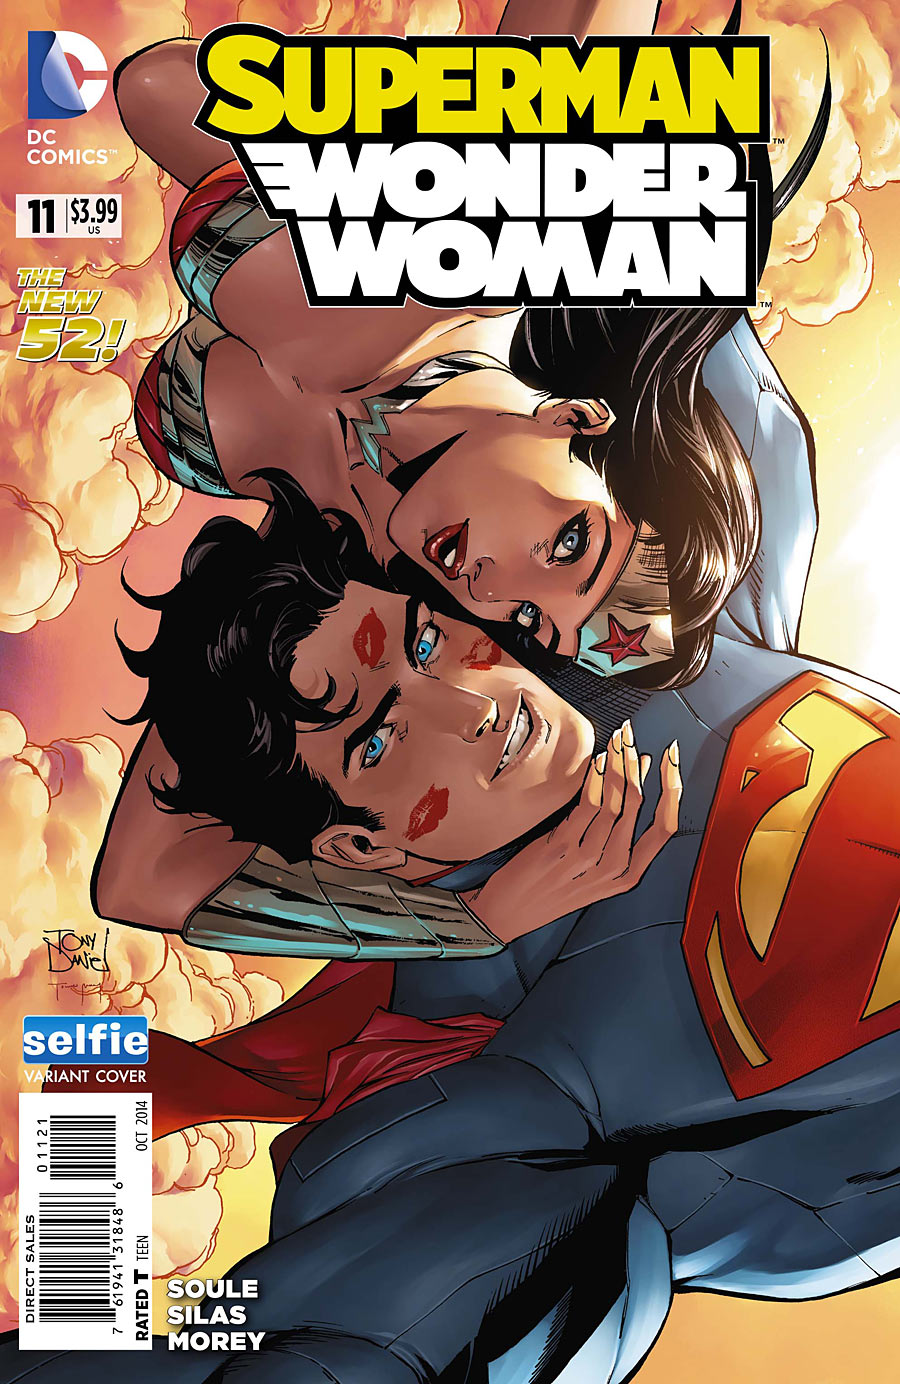 Superman Wonder Woman Vol 1 11 Selfie Variant